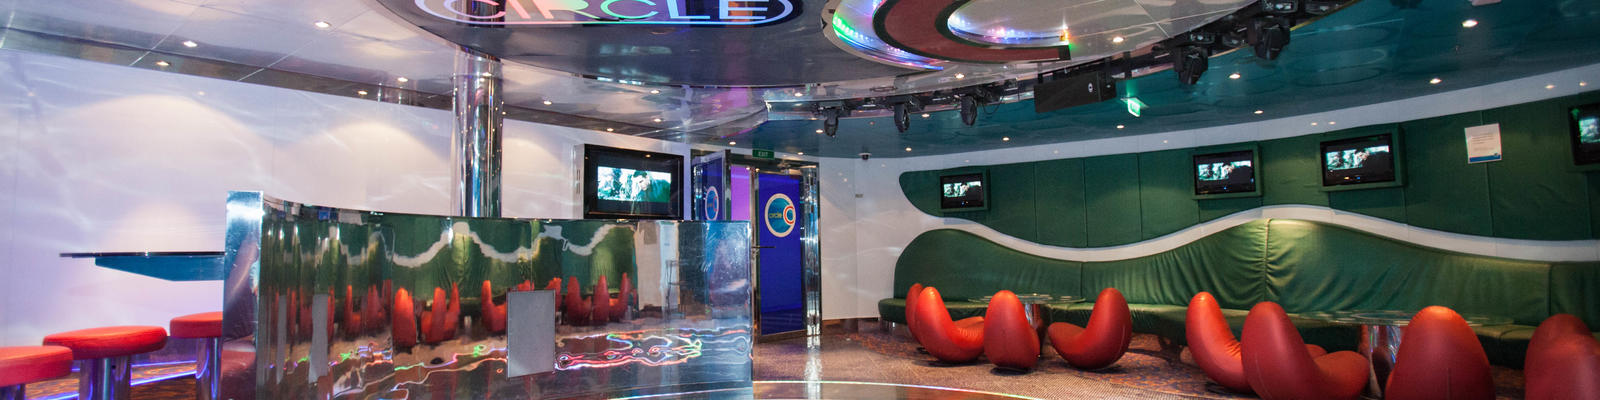 The Circle C on Carnival Breeze (Photo: Cruise Critic)